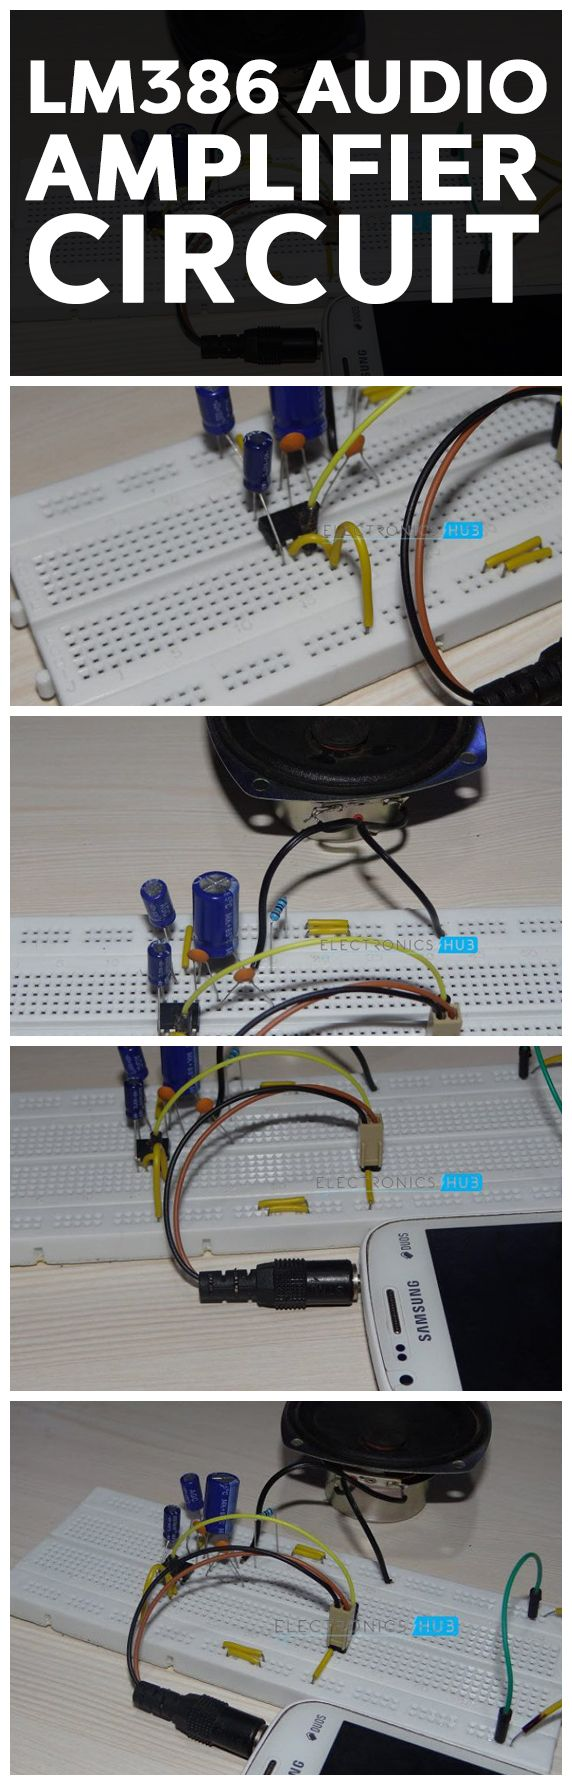 Lm386 Audio Amplifier Circuit Pinterest Simple Tachometer Making Easy Circuits And Speakers